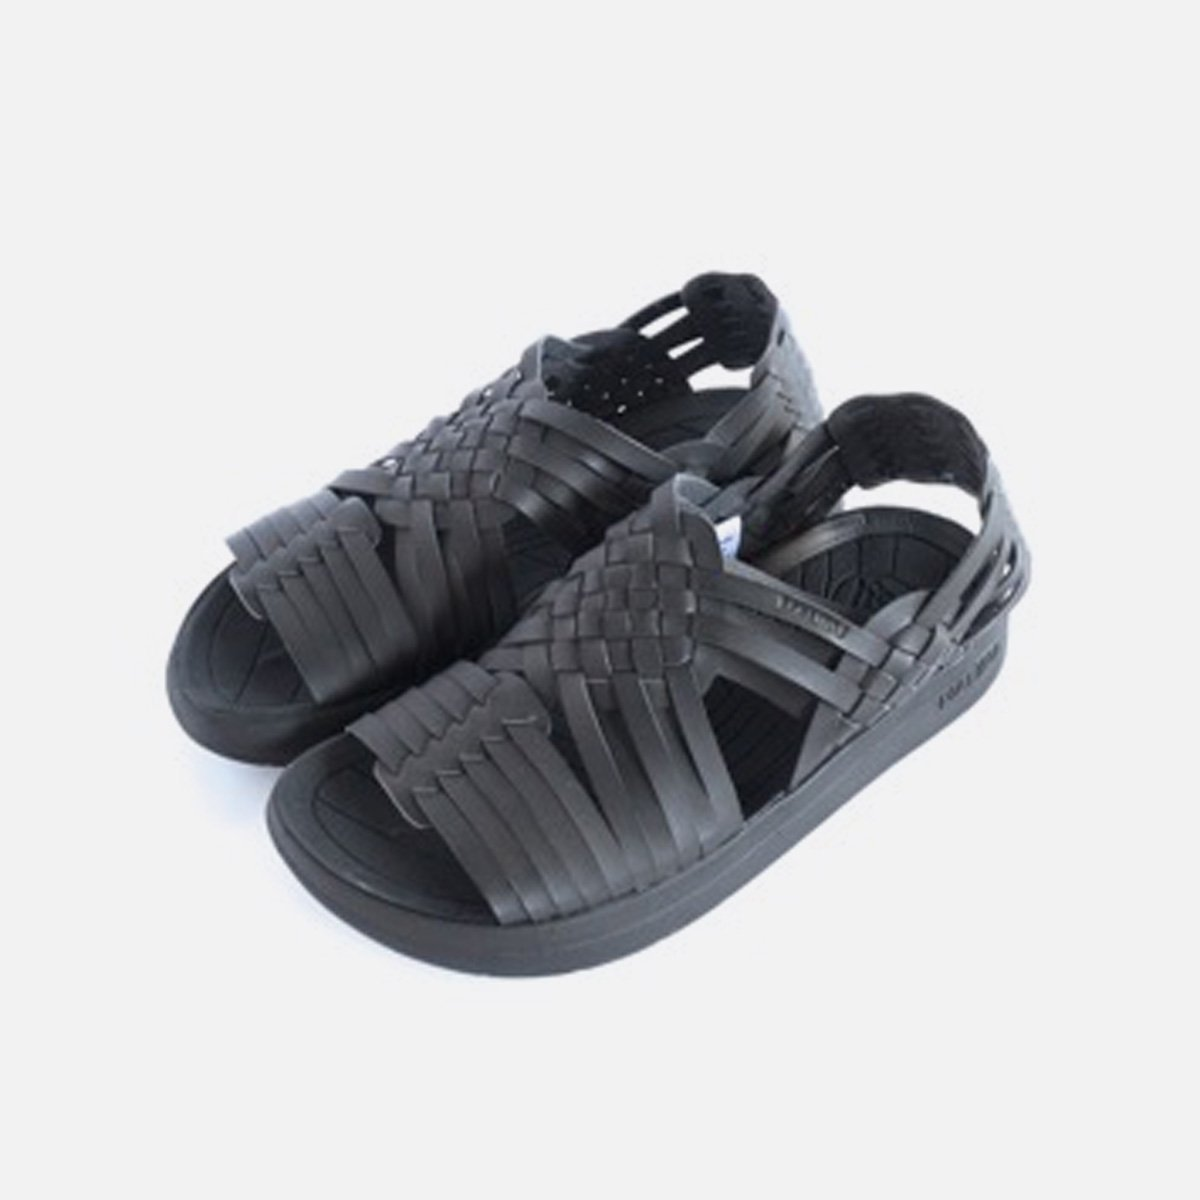 MALIBU SANDALS VEGAN LEATHER CANYON (BLACK&BLACK)2